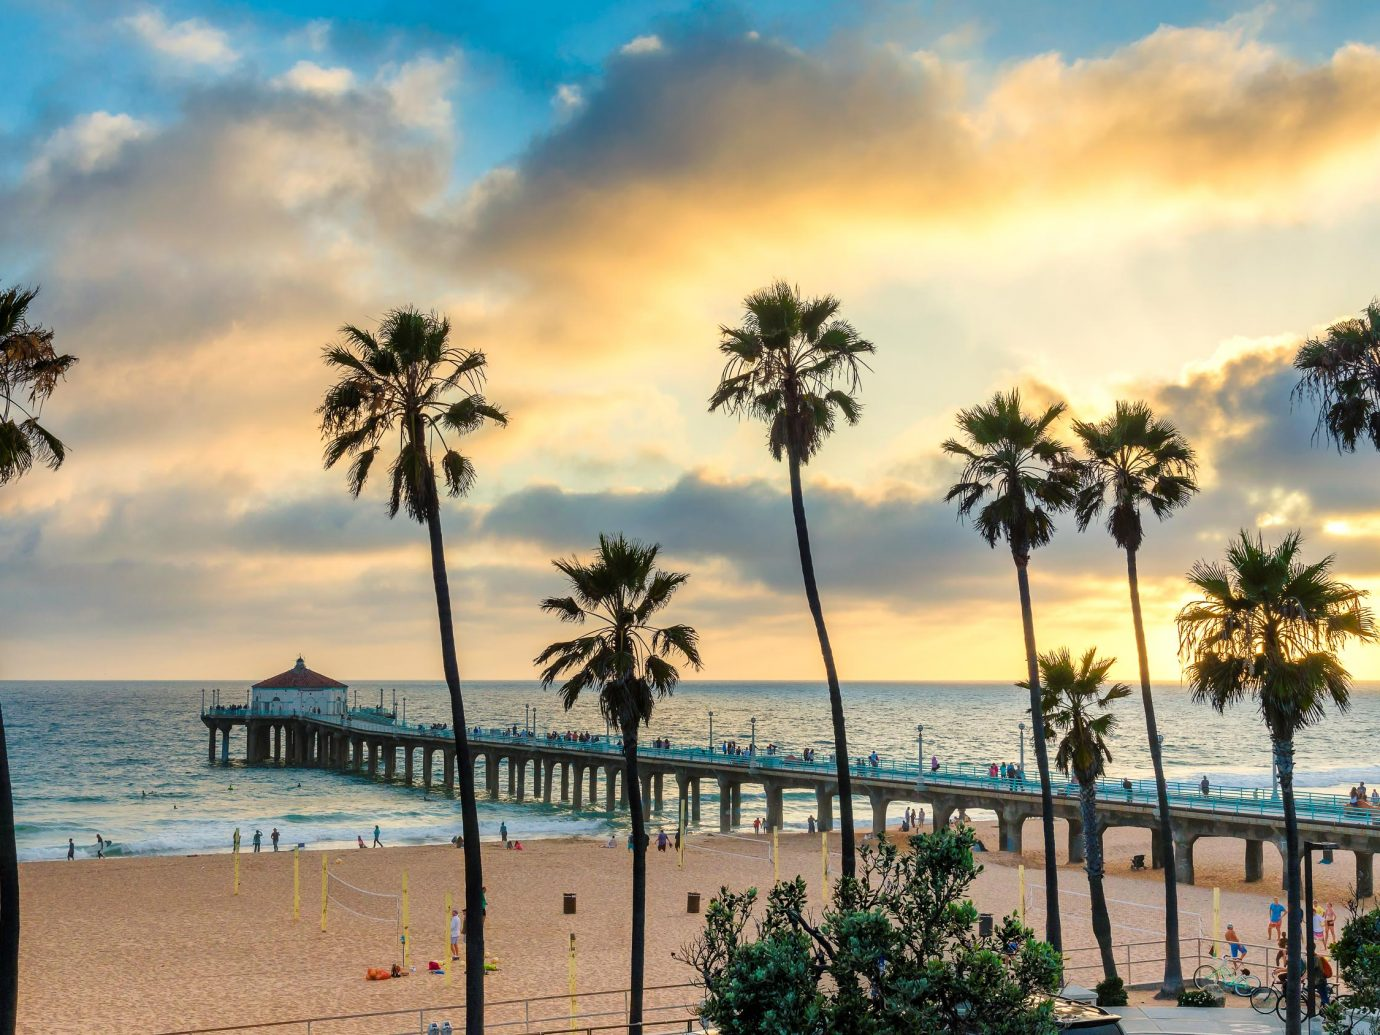 A Local S Guide To Venice Beach With David De Rothschild